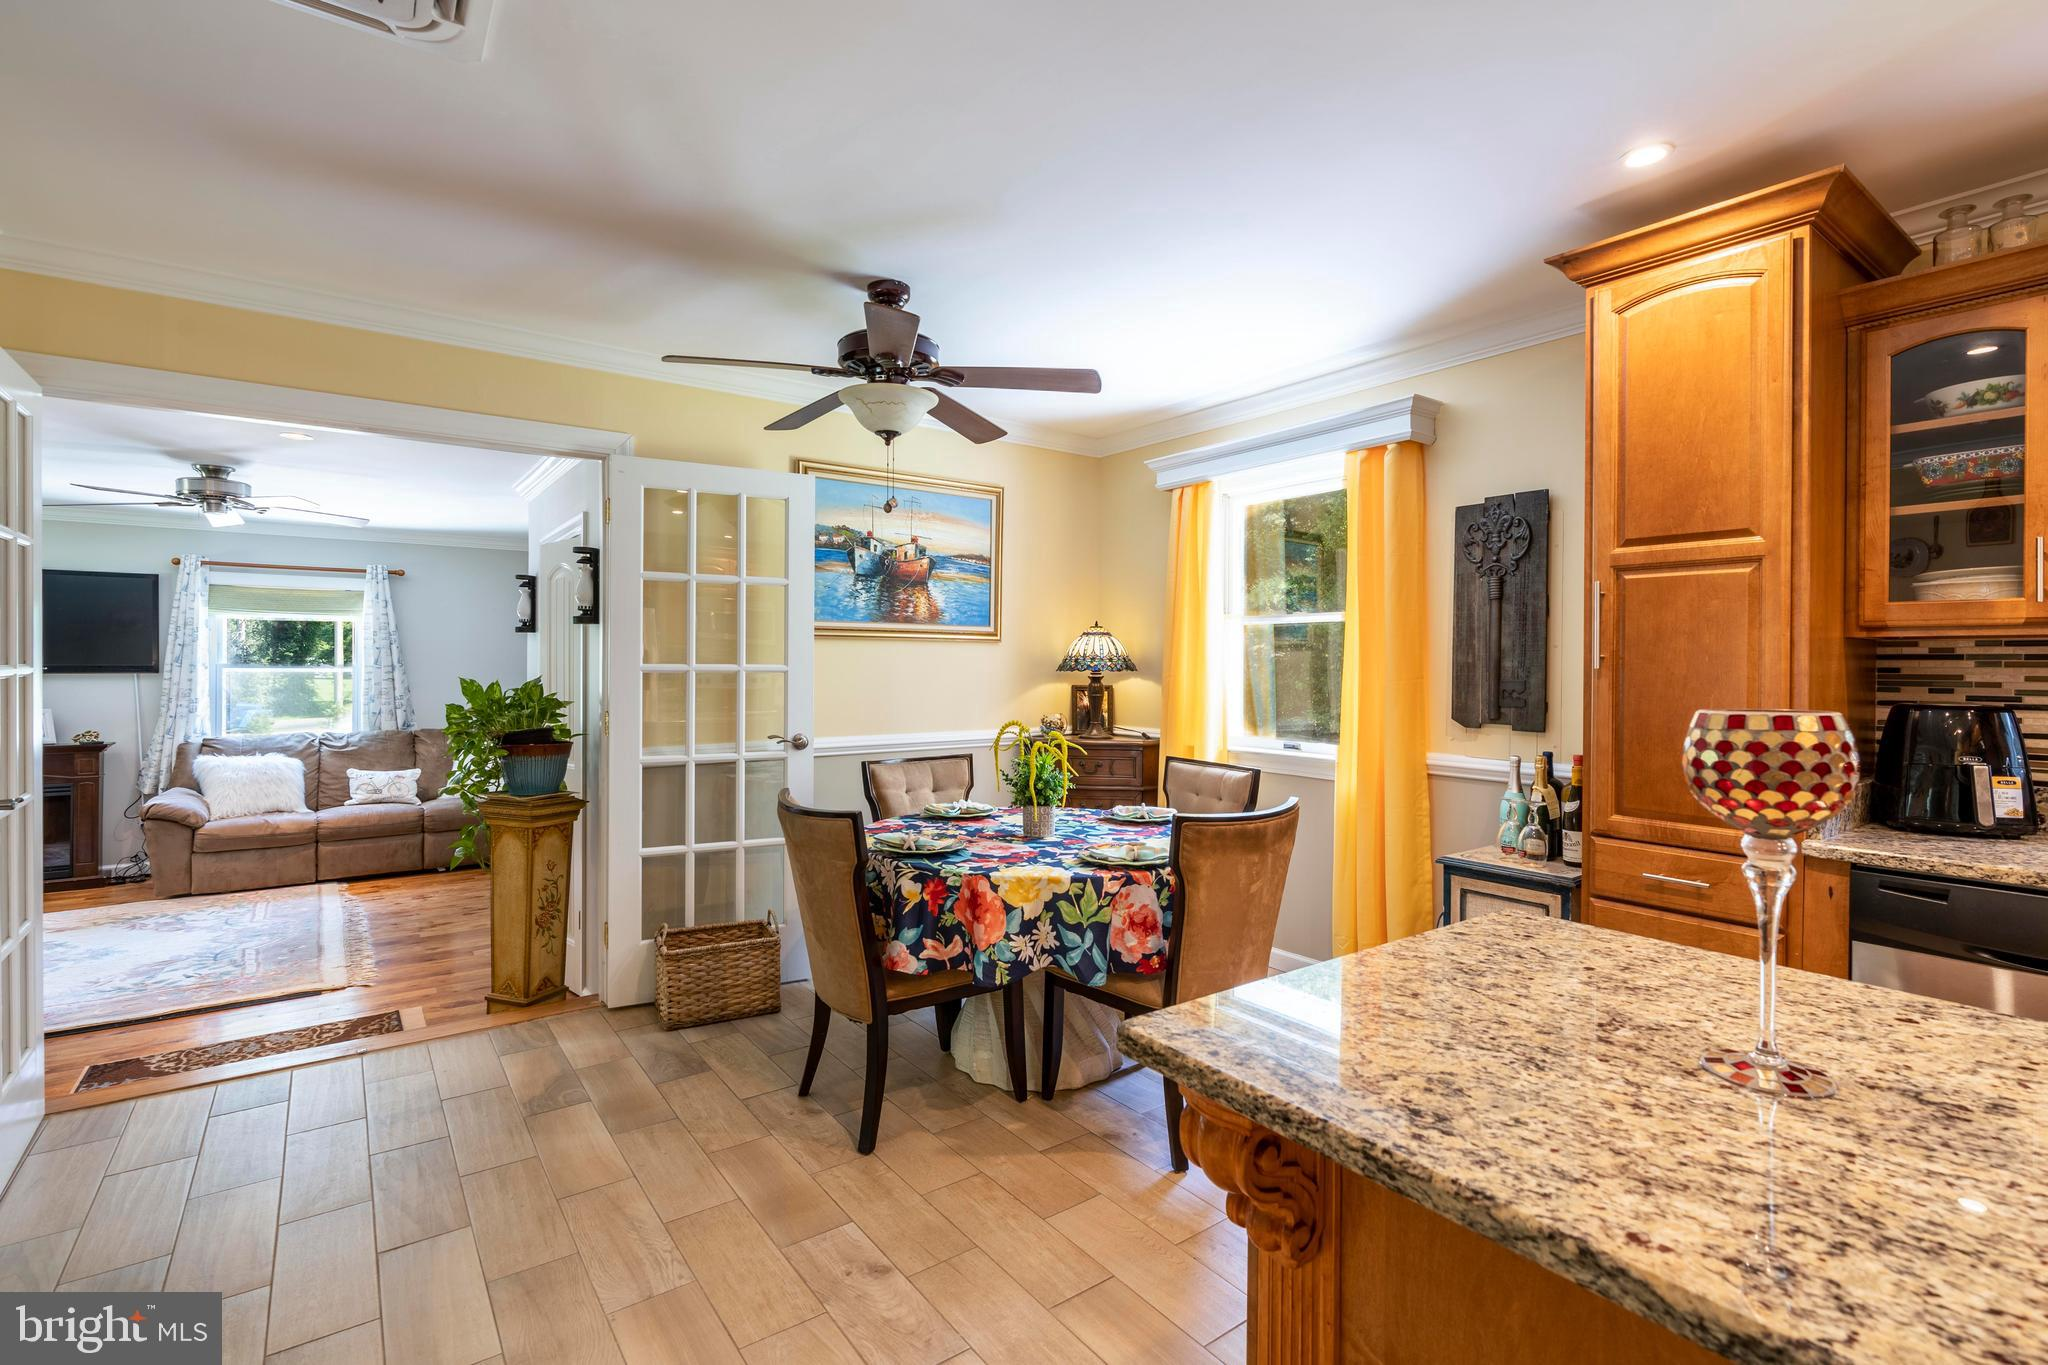 7297 STATION ROAD, NEWCOMB, MD 21653